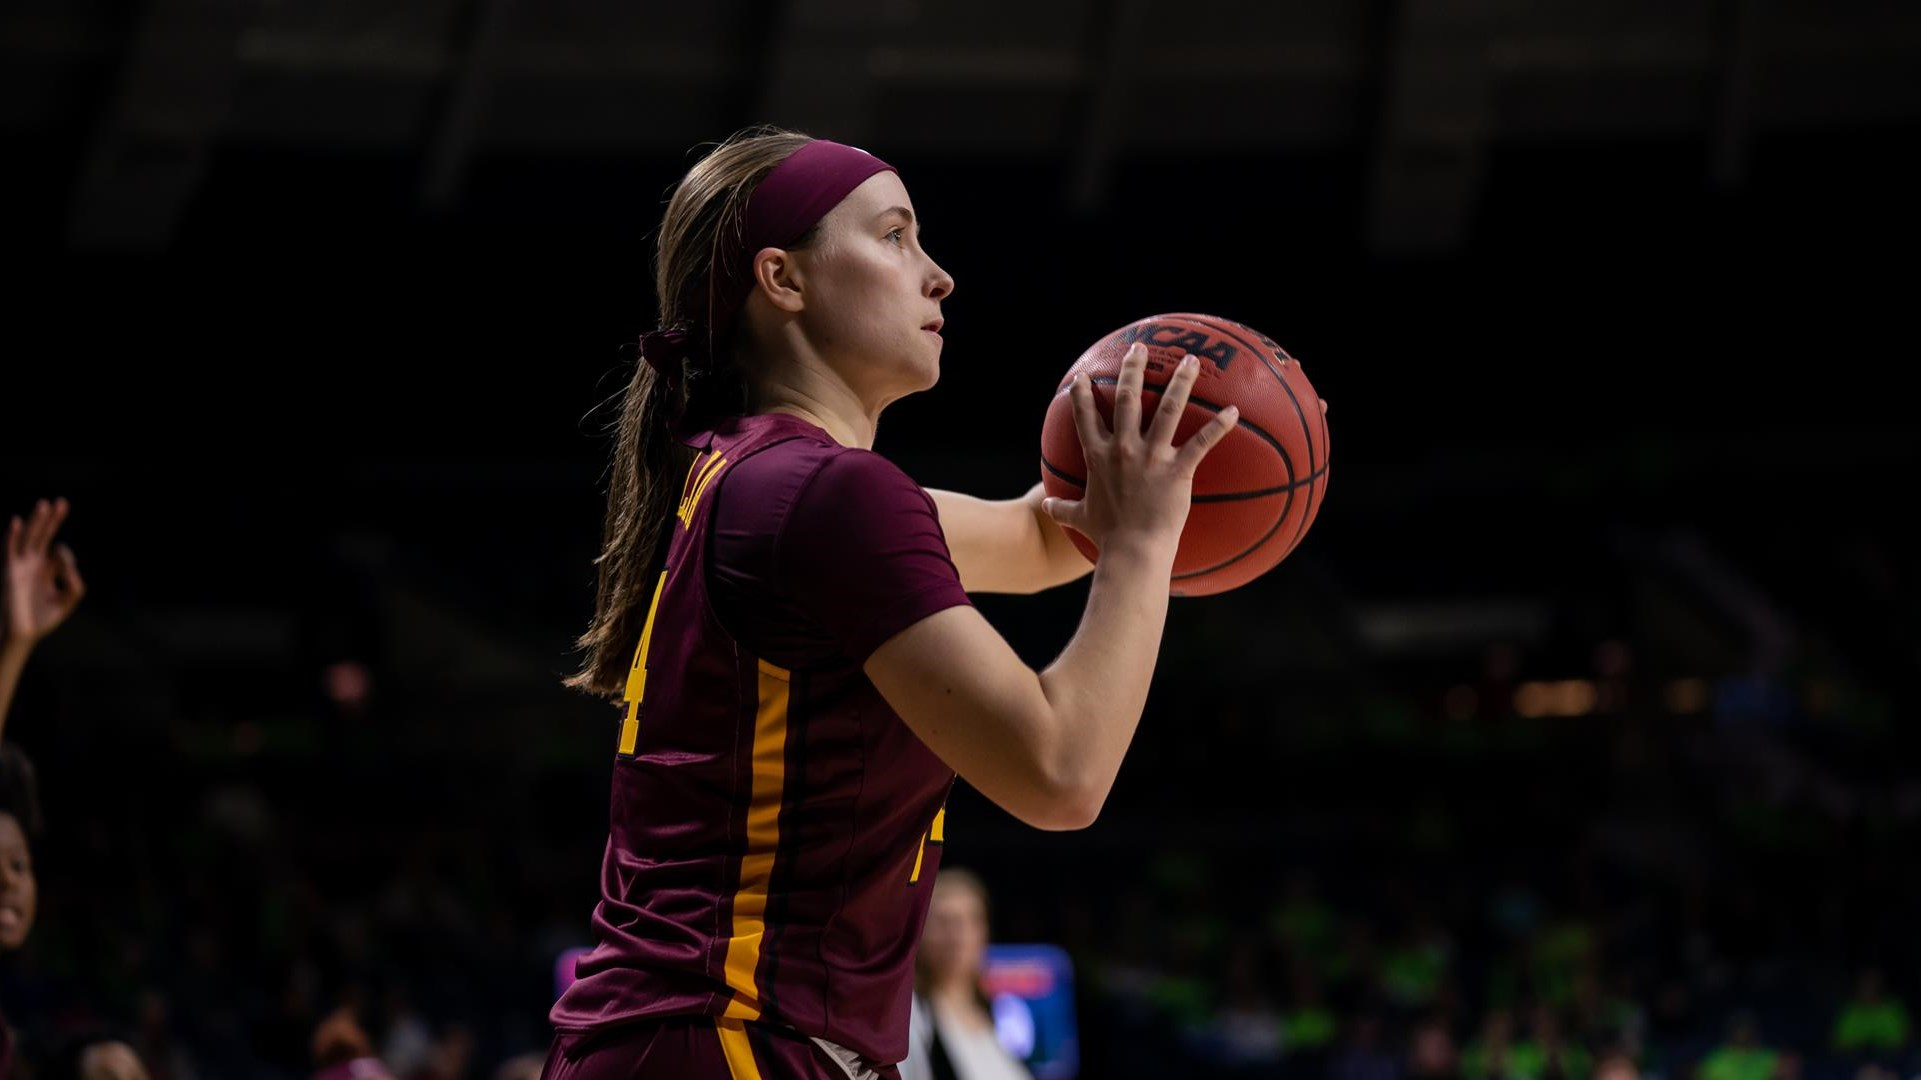 Win Streak at Eight as Gophers Grab Road Win at George Washington